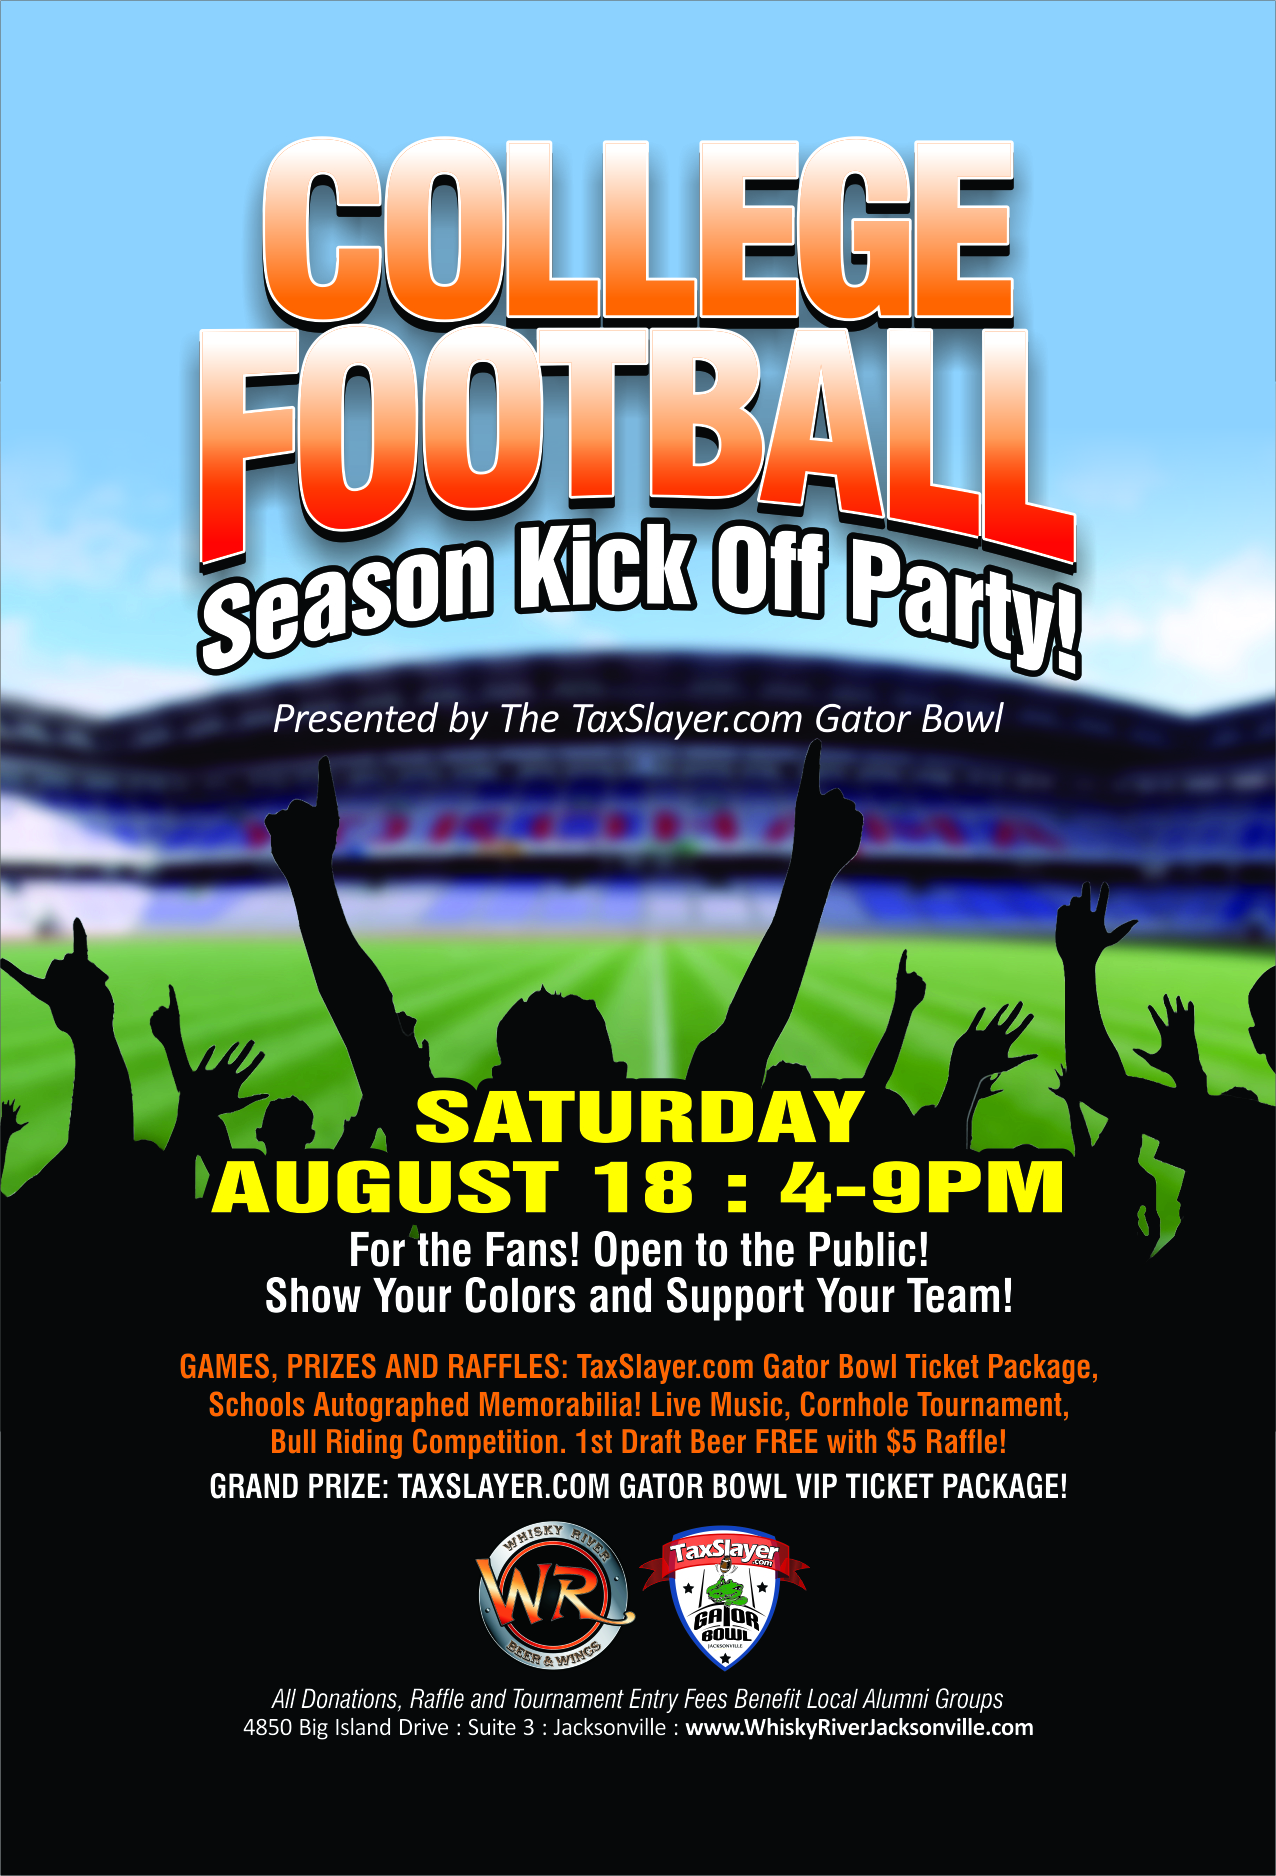 college football season kickoff party presented by the gator bowl georgia